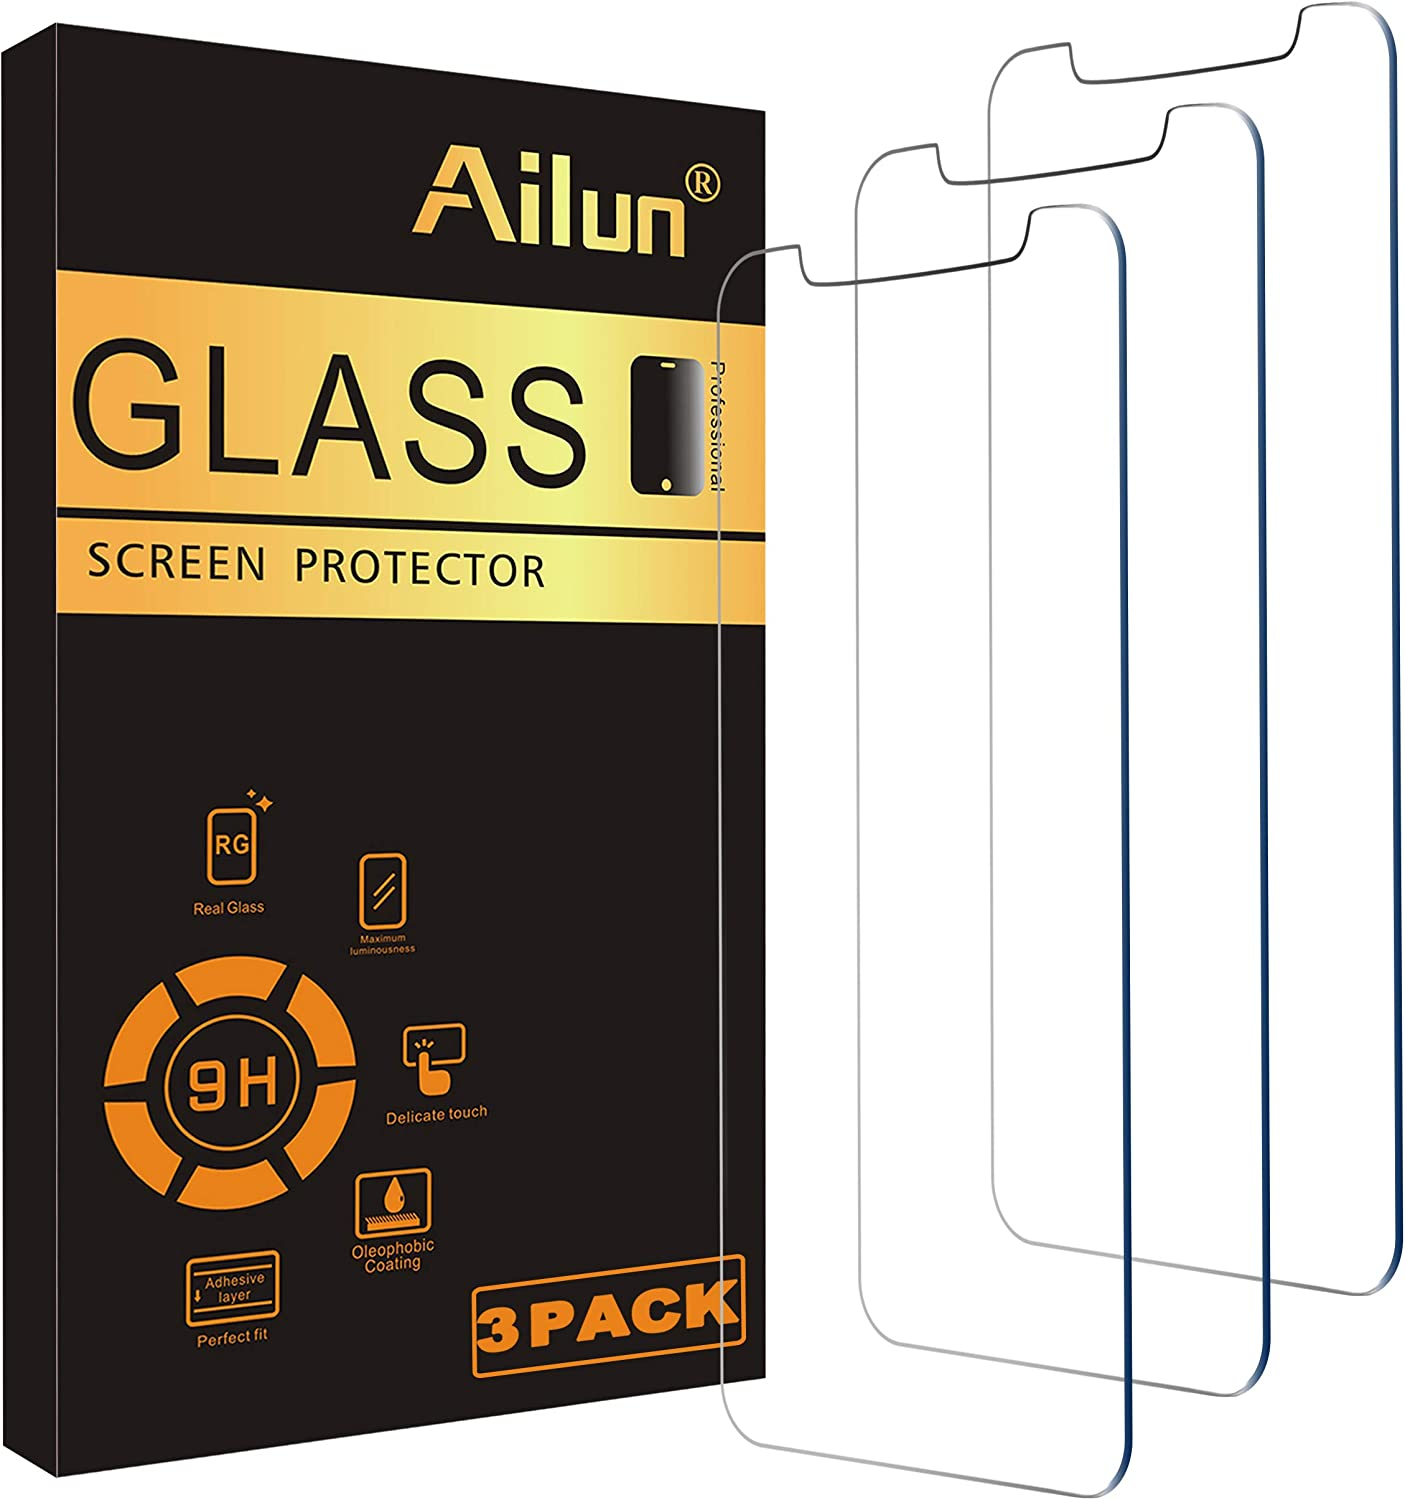 Ailun 6.1 Inch 3 Pack Tempered Glass Screen Protector $5.07 Coupon